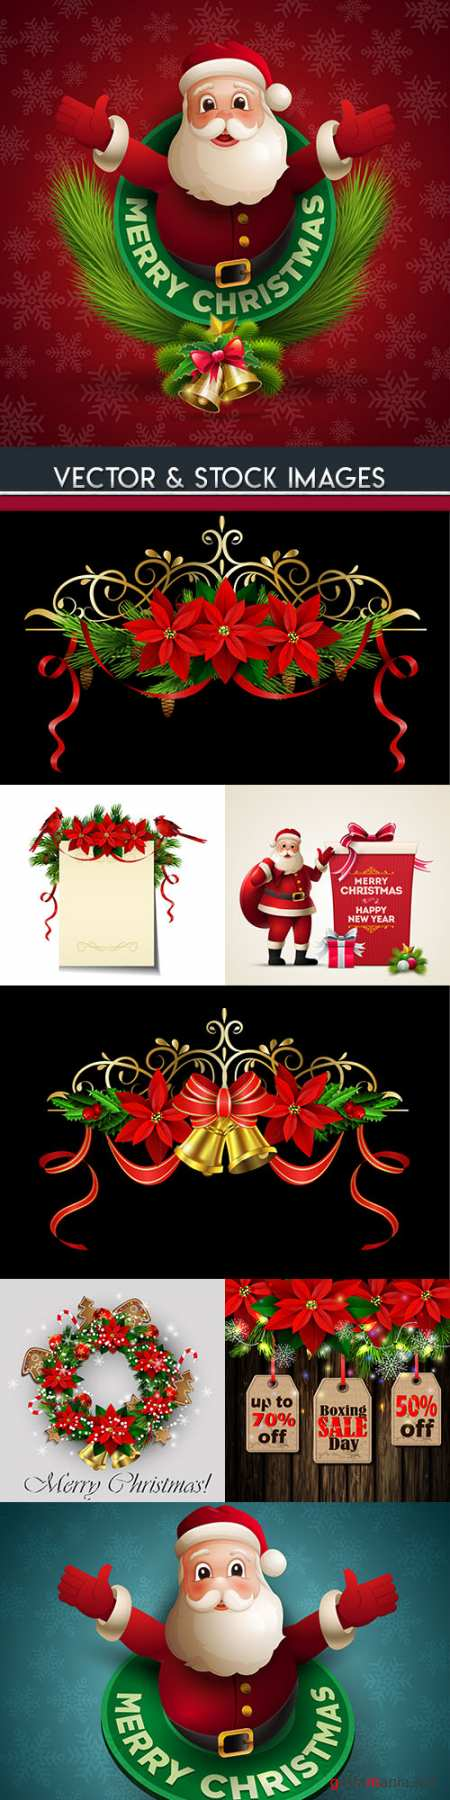 Santa funny Christmas flowers and decorative elements